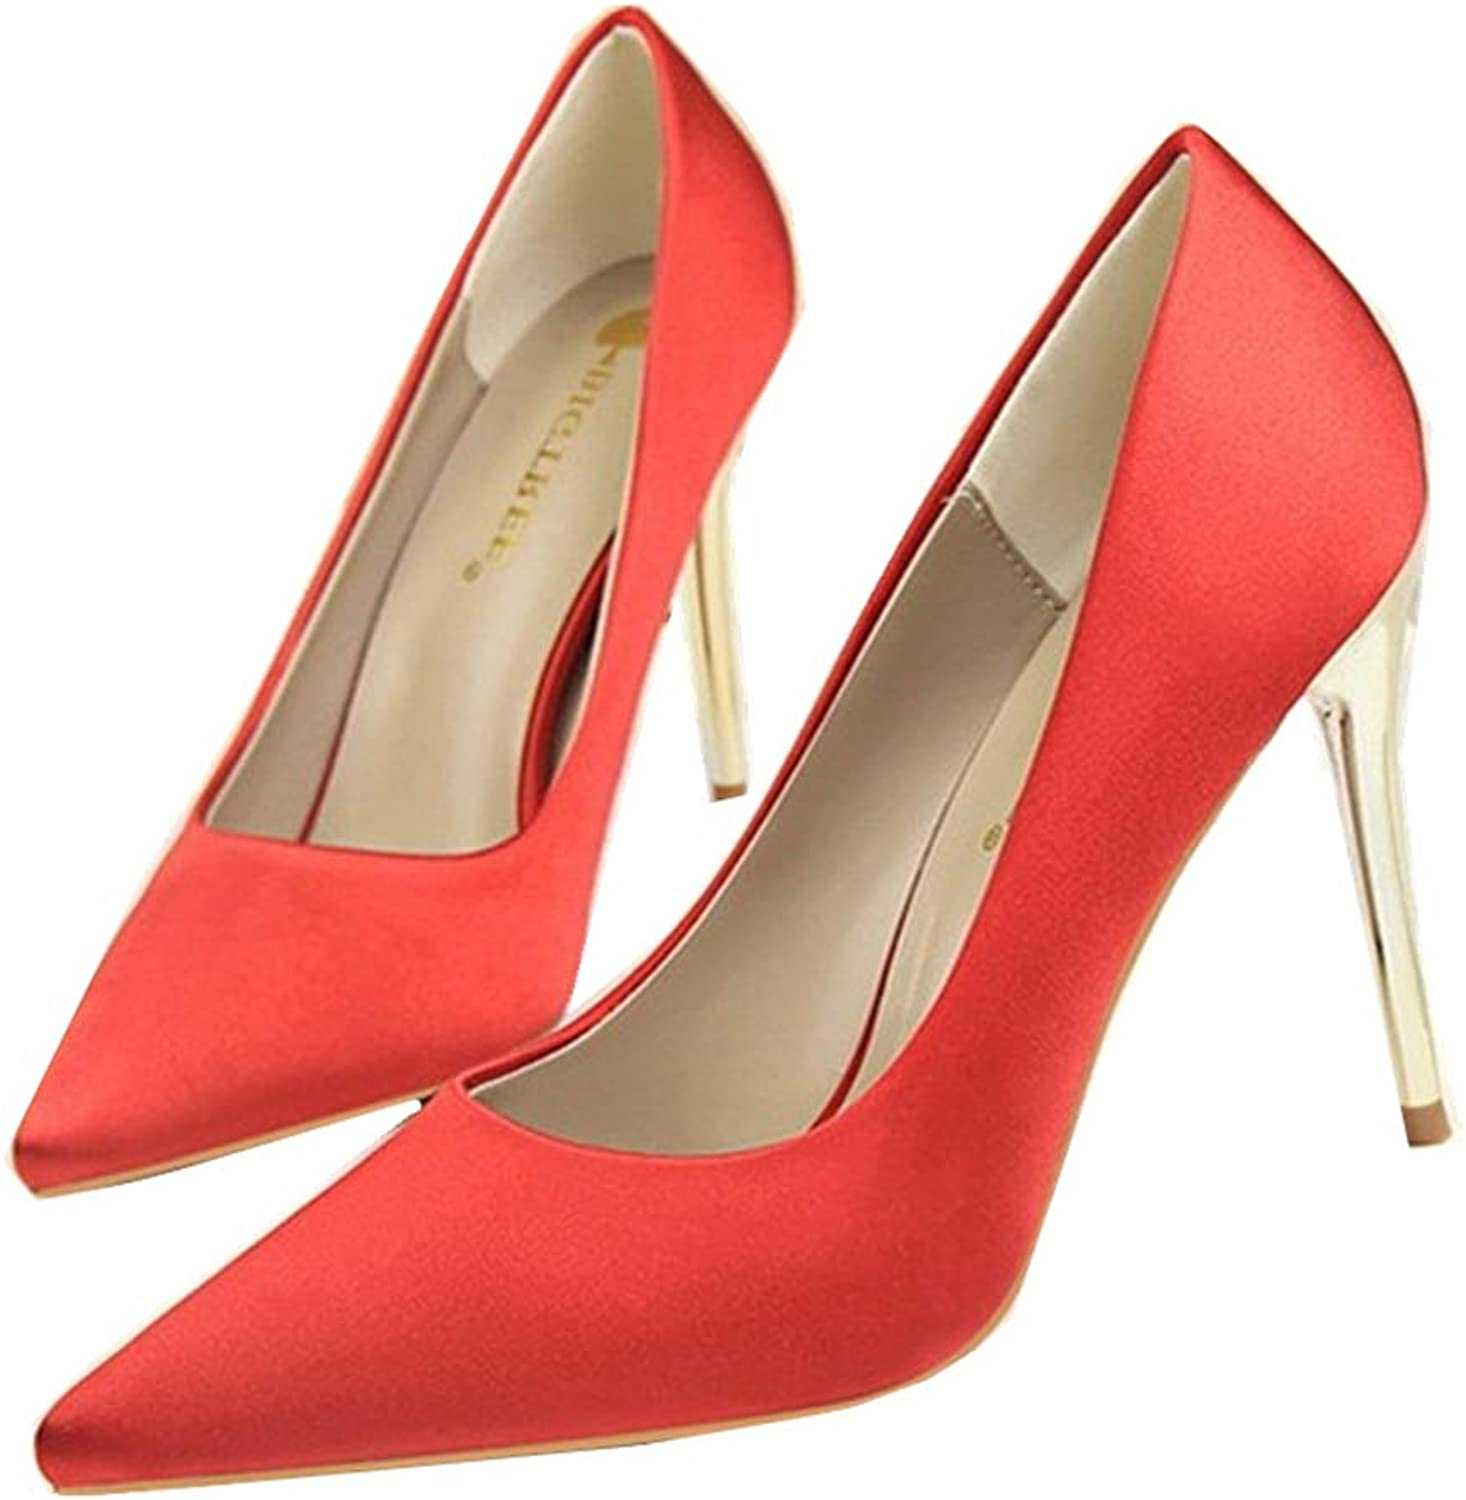 GUJMin Women's Closed Pointed shoes high Heels high Heels Party Sexy Wedding shoes